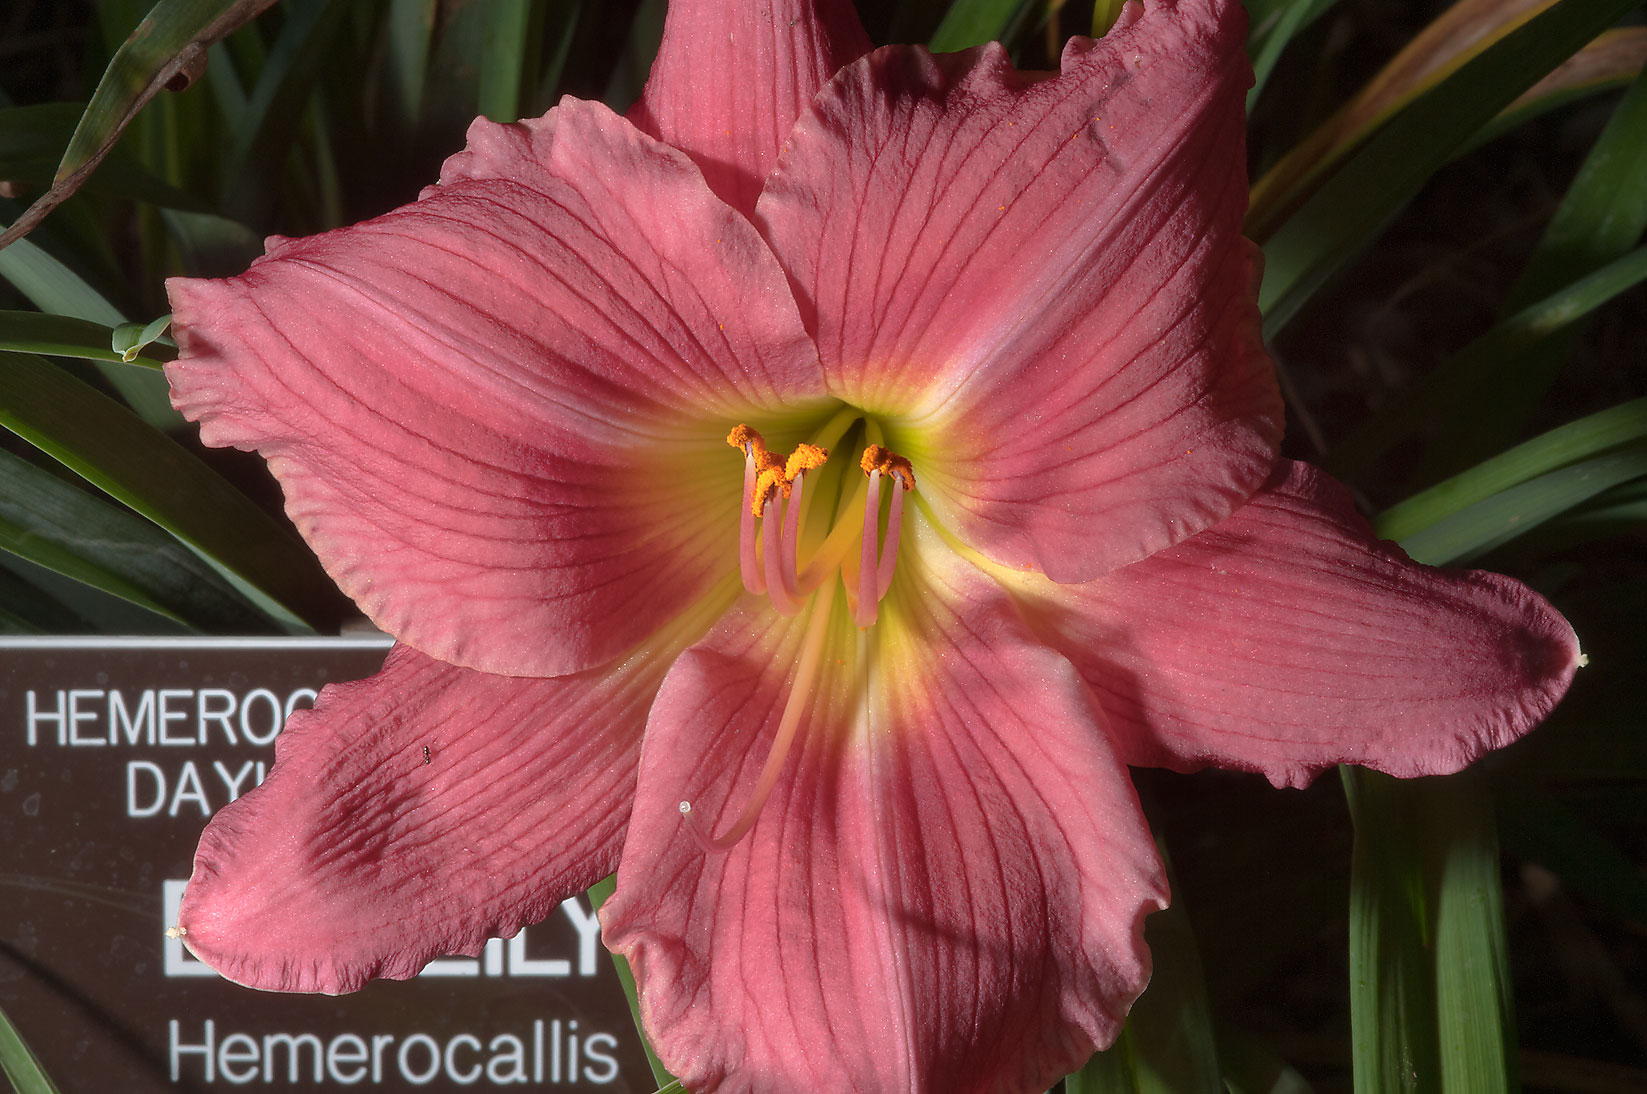 Daylily (Hemerocallis) in Mercer Arboretum and...Gardens. Humble (Houston area), Texas